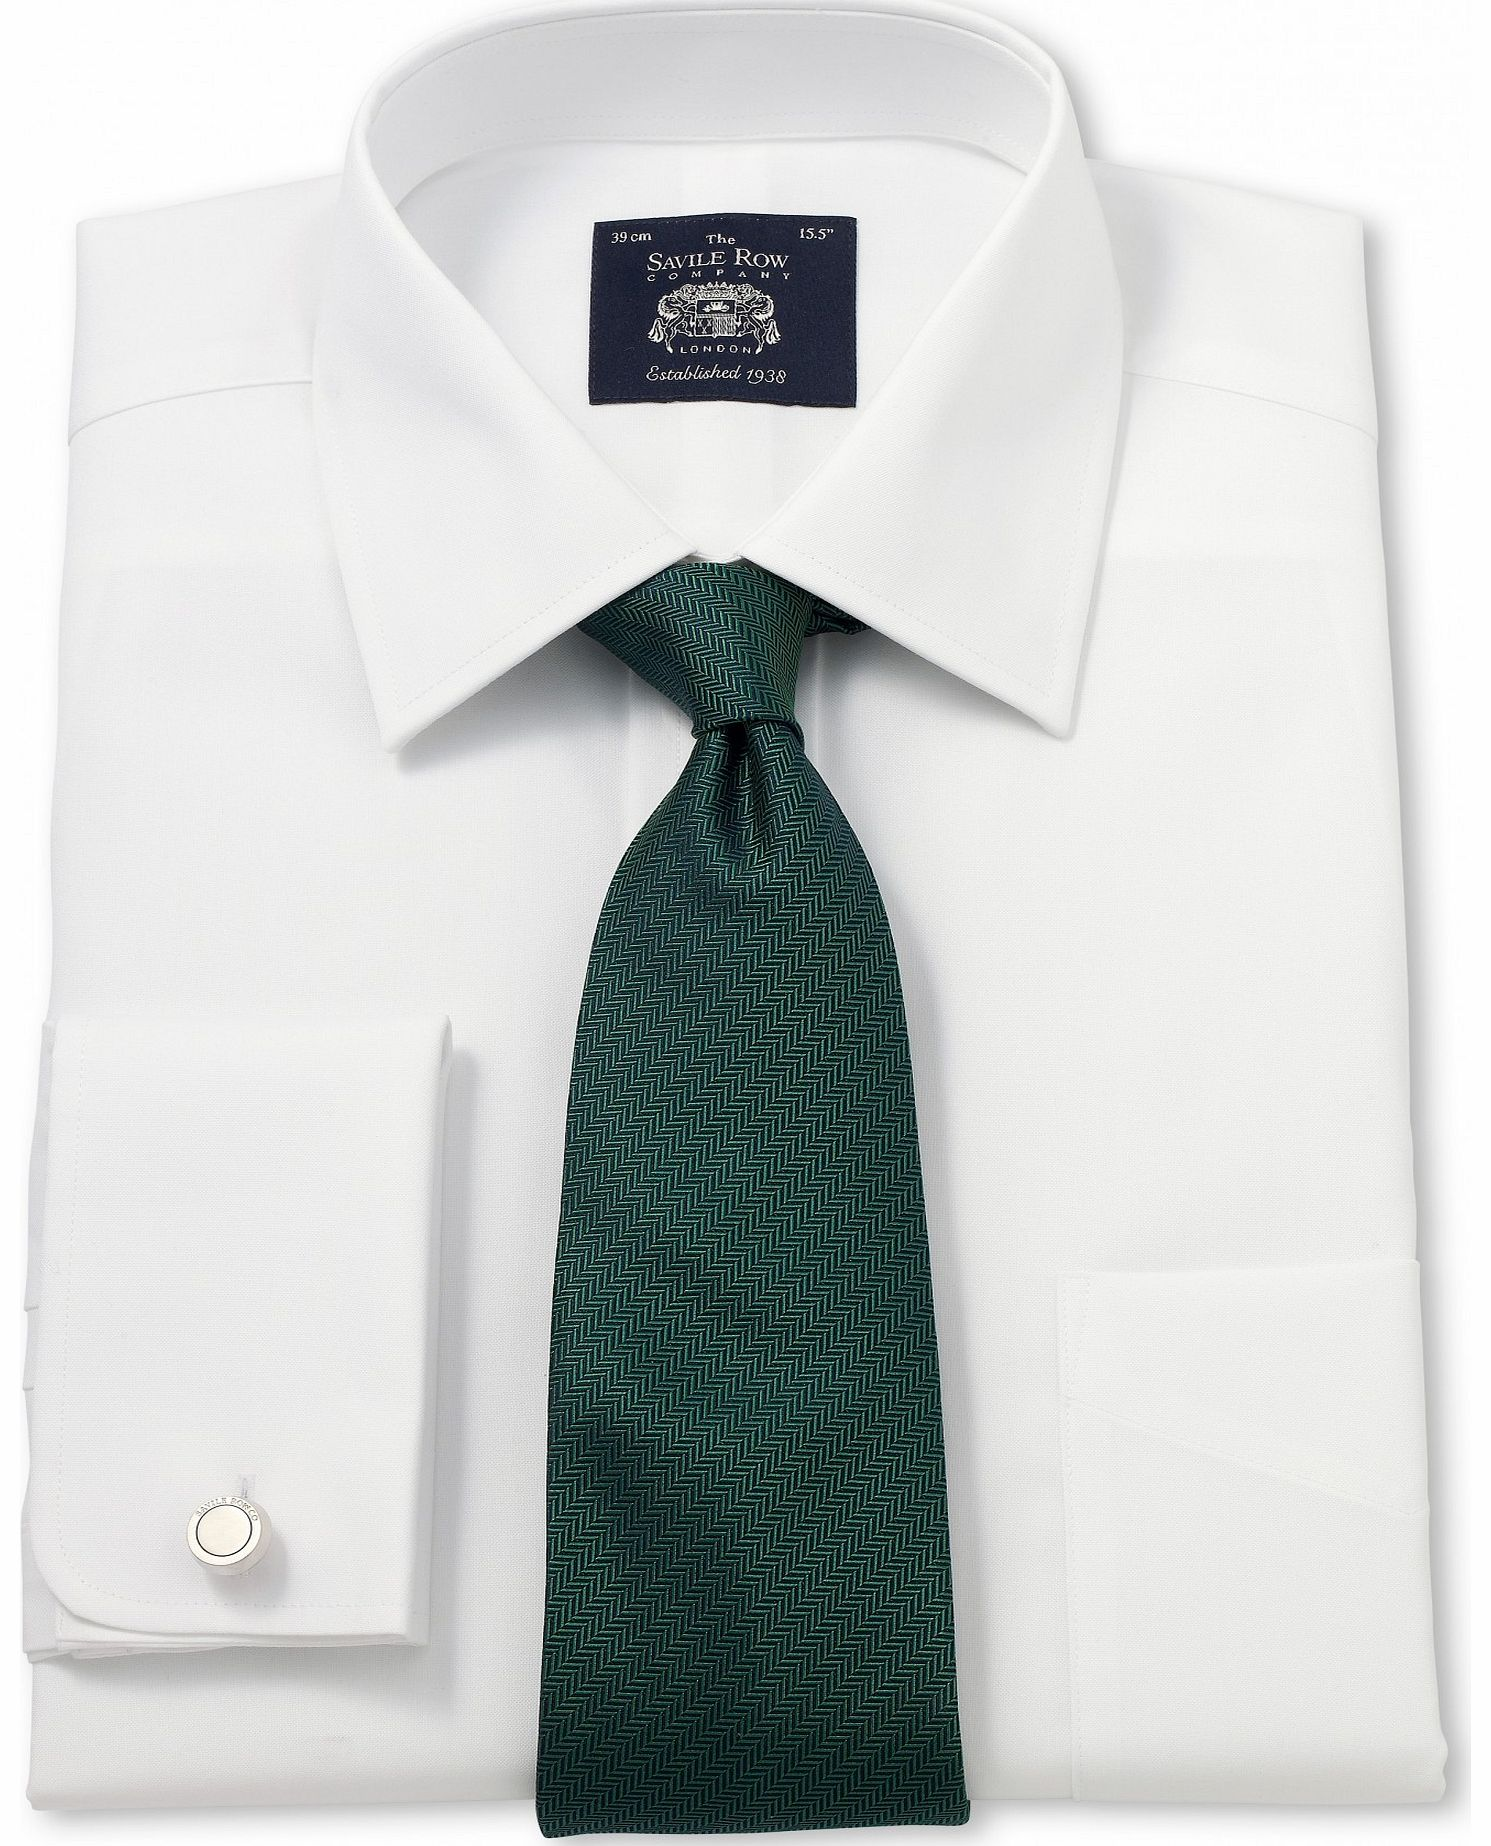 Savile Row Company White Non-Iron Classic Fit Shirt 16 1/2`` product image